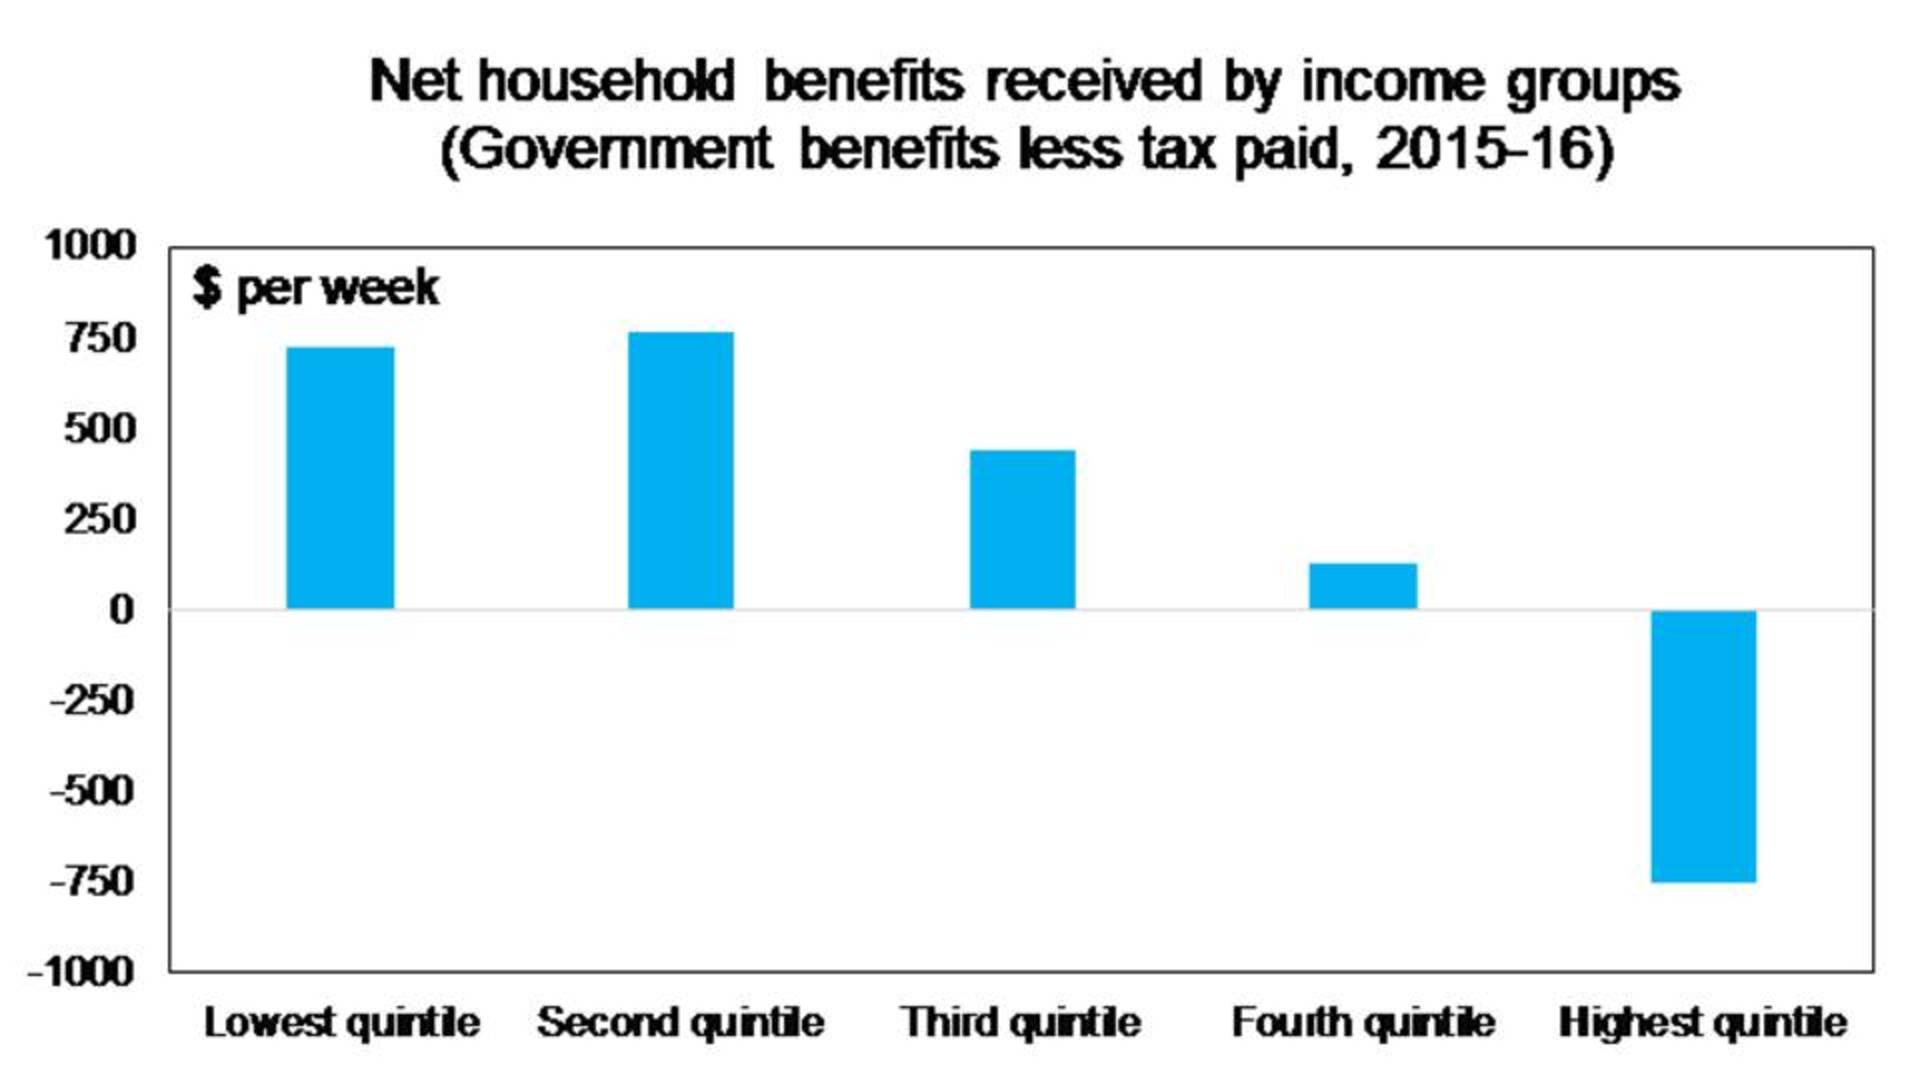 Net household benefits